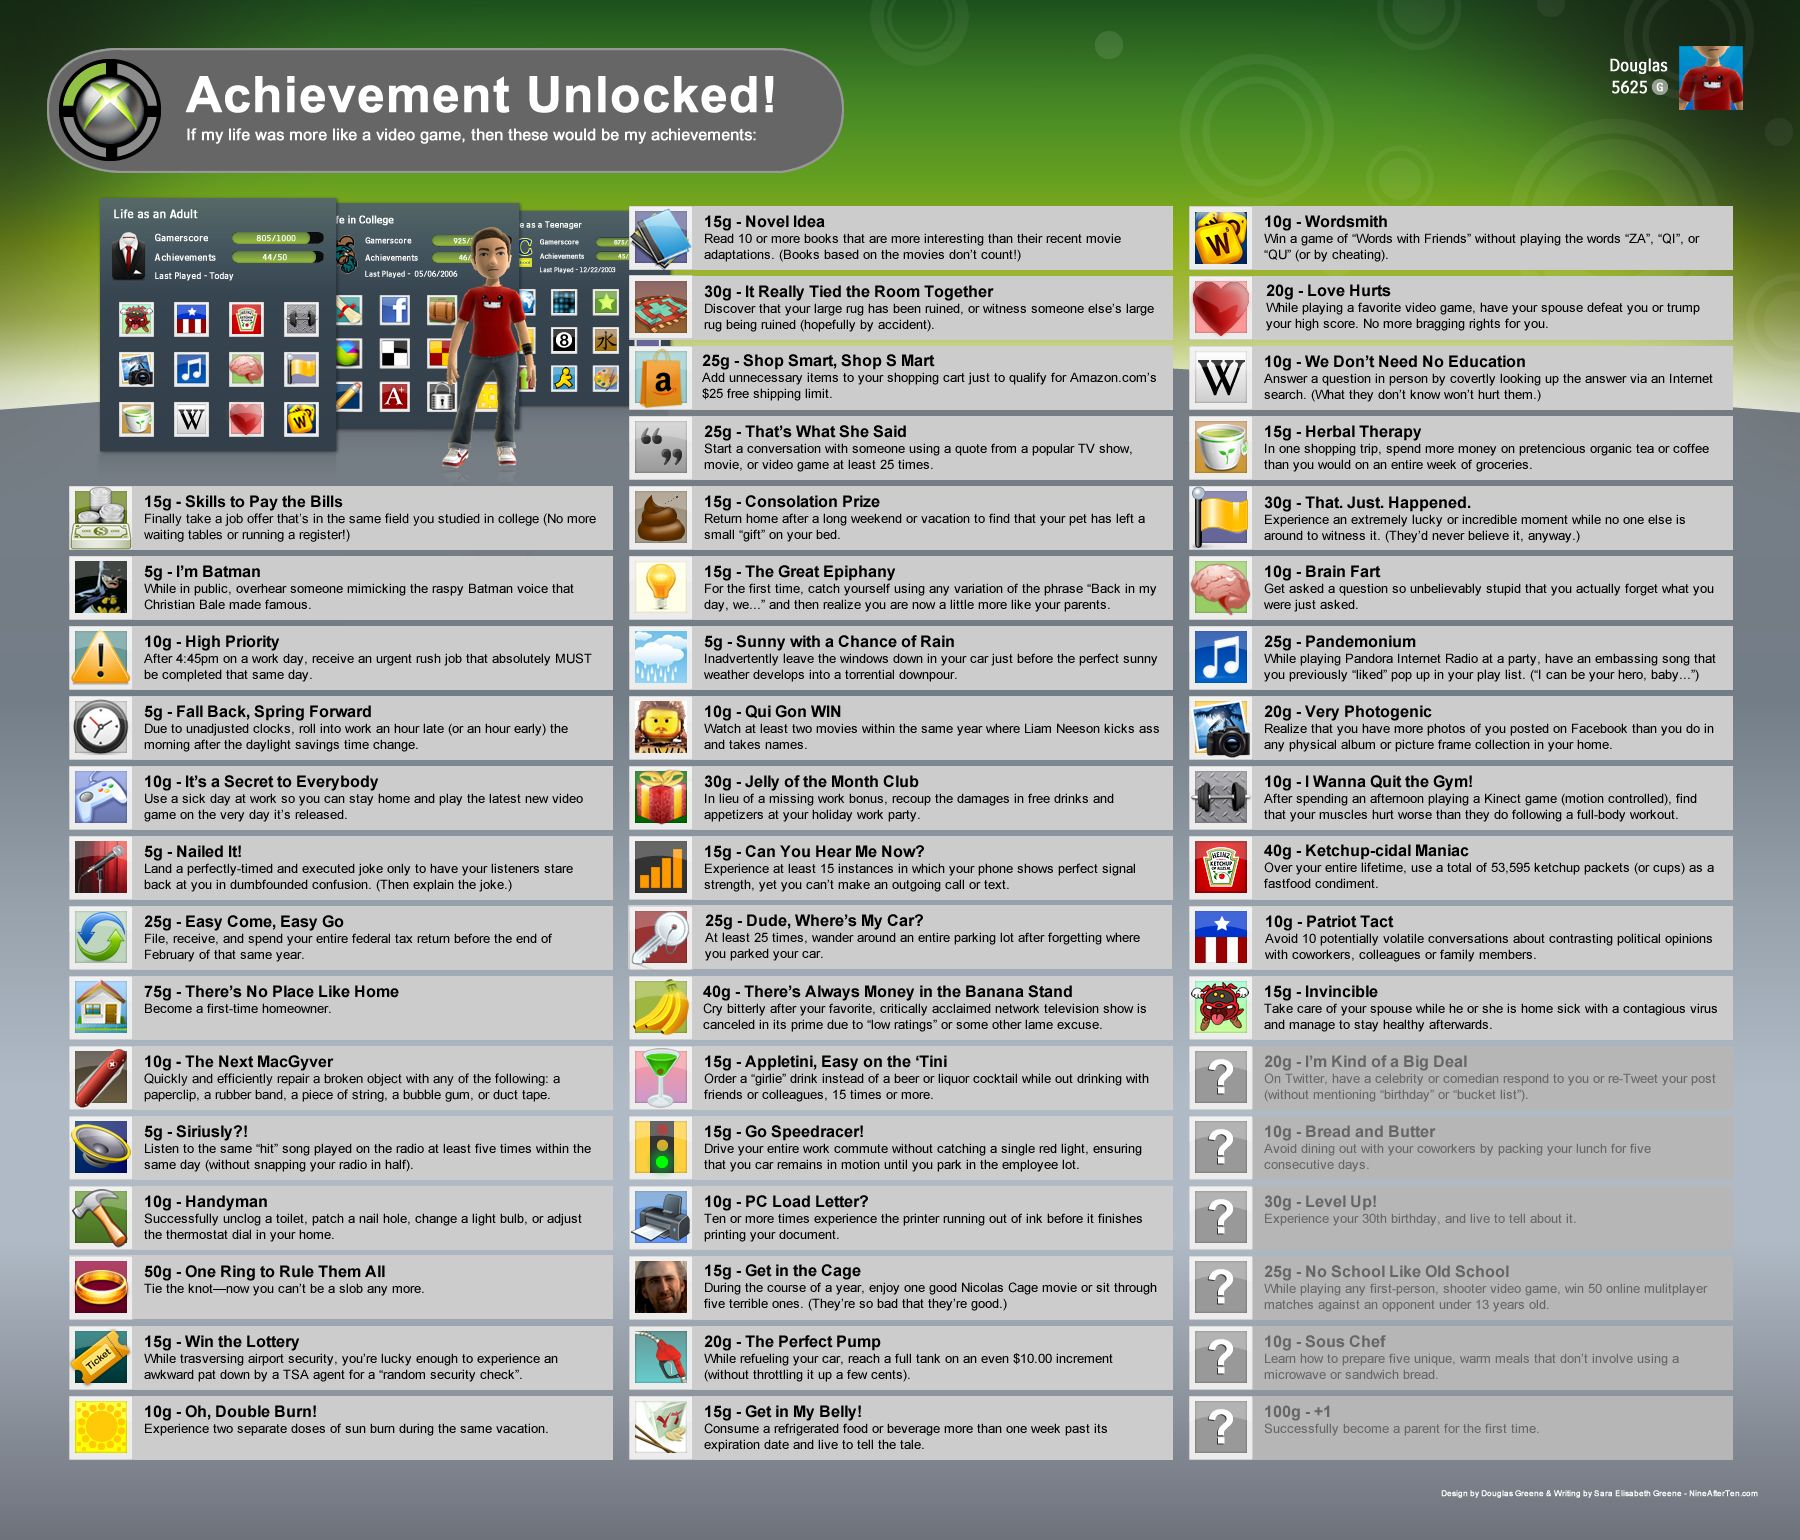 If my life was more like a video game    - Xbox Achievements